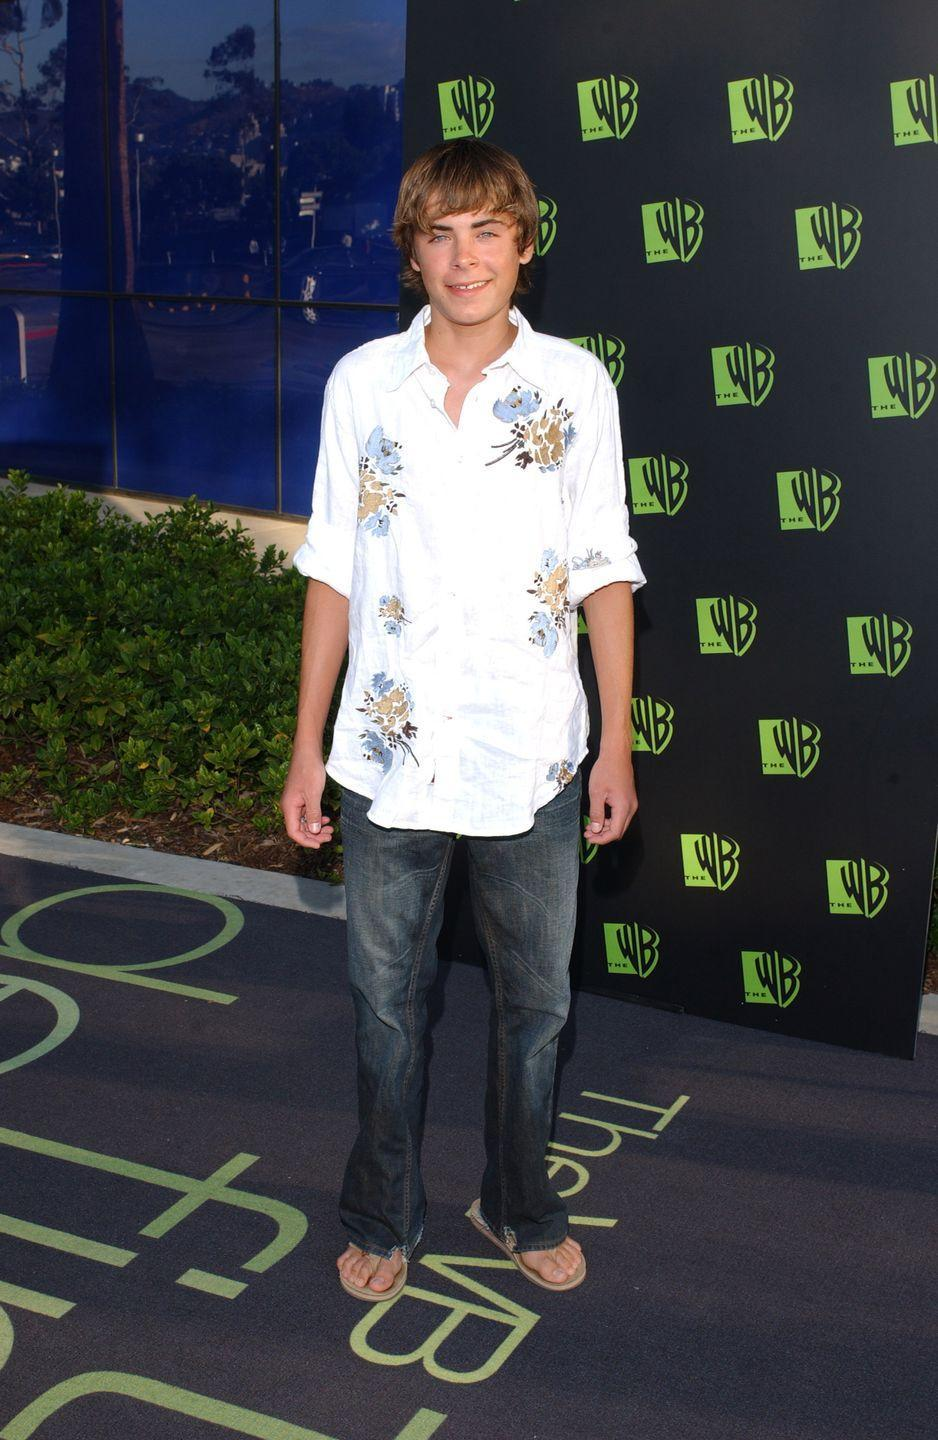 <p>Not yet a heartthrob, Zac Efron arrived at the WB's All-Star Summer Party in a flower-adorned linen shirt that, shockingly, was not paired with a puka shell necklace.</p>